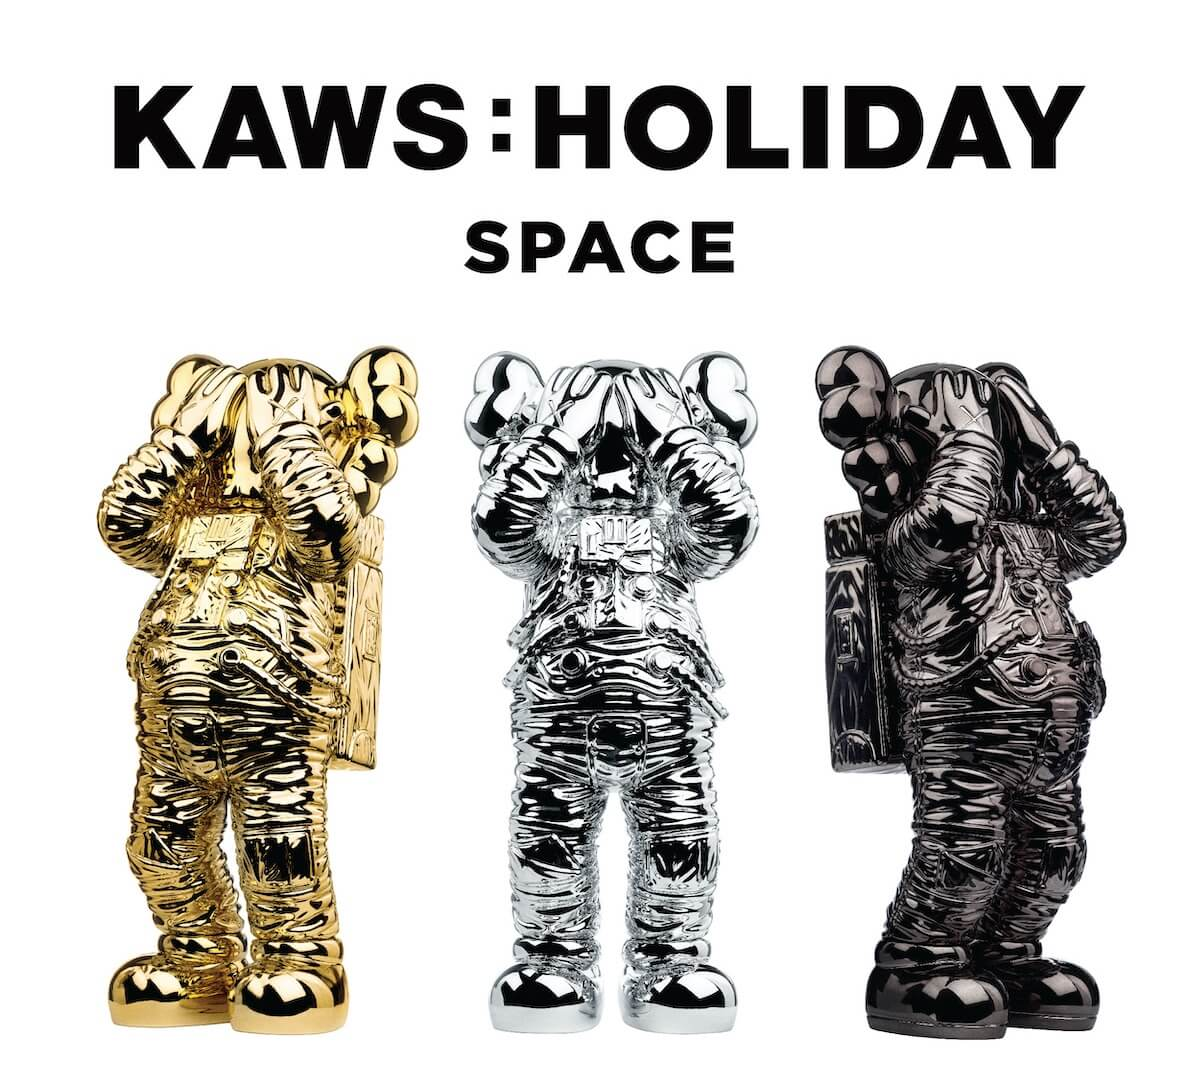 KAWS Holiday Space Companion Art Toy